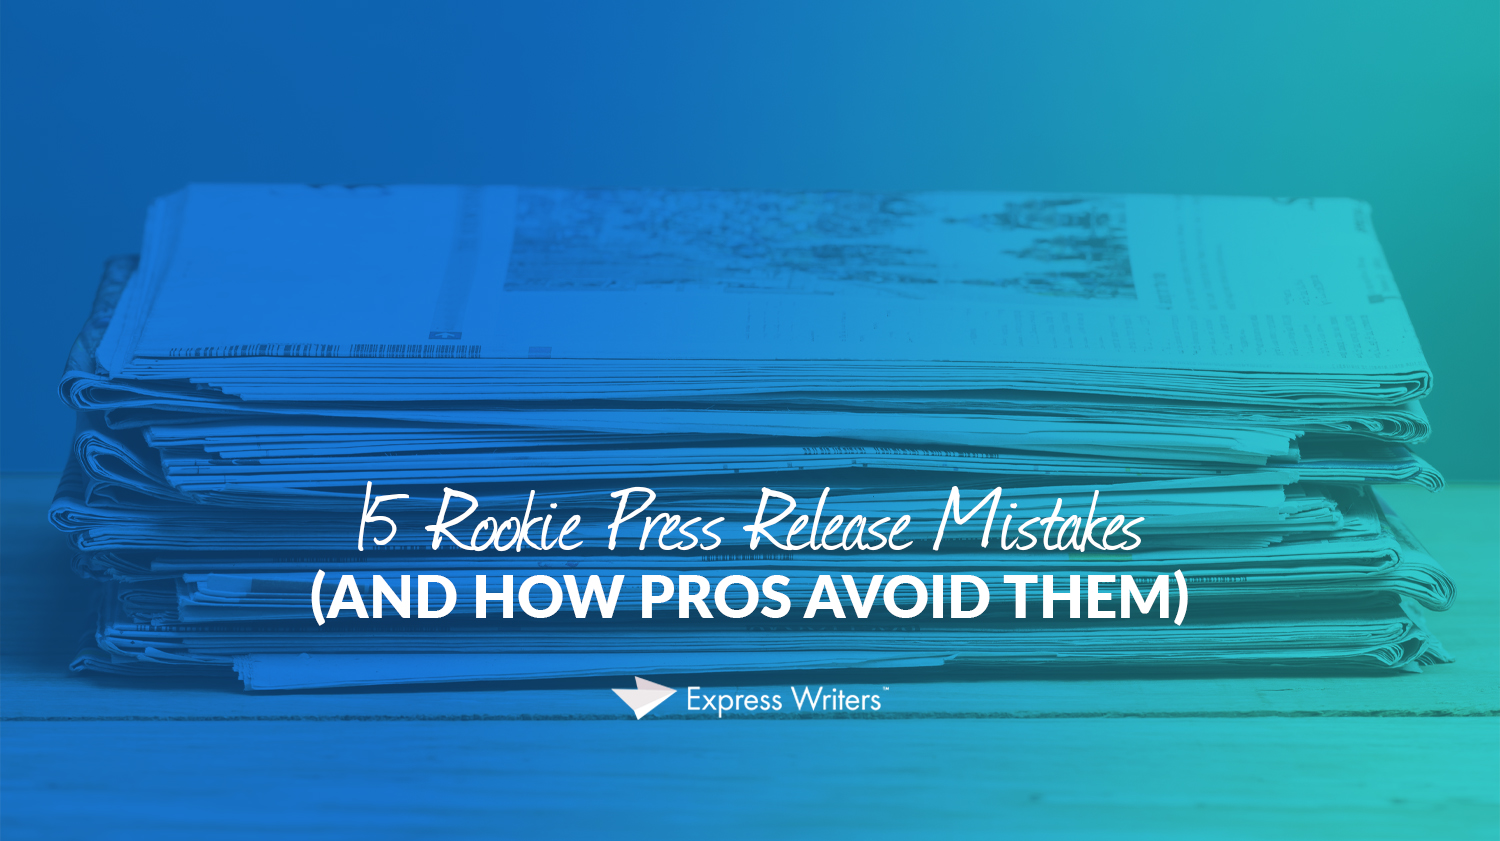 15 rookie press release mistakes